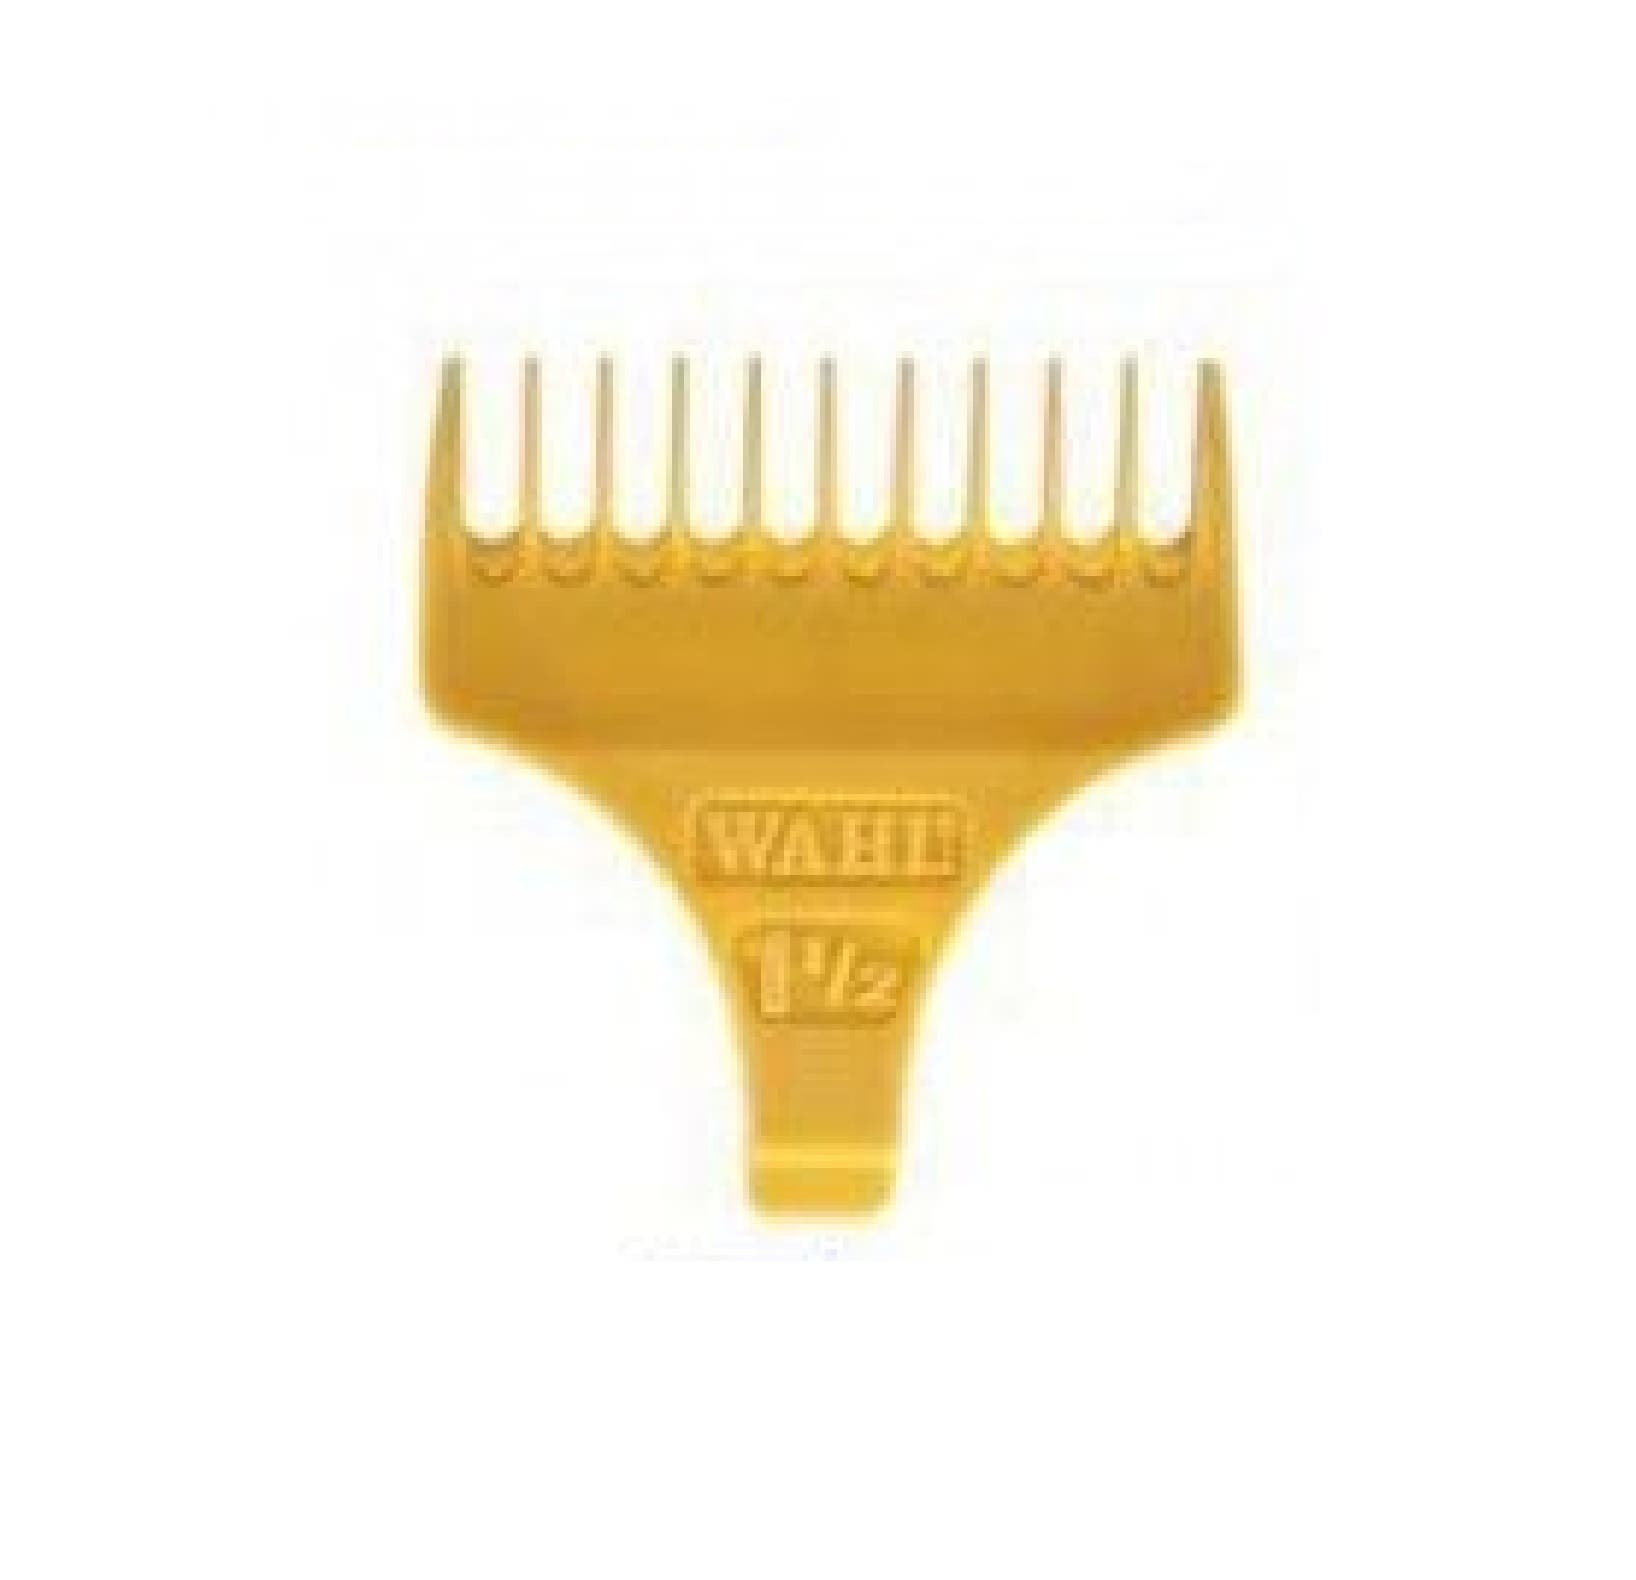 Wahl #1 1/2 Attachment Comb - Yellow for Classic Detailer Trimmer